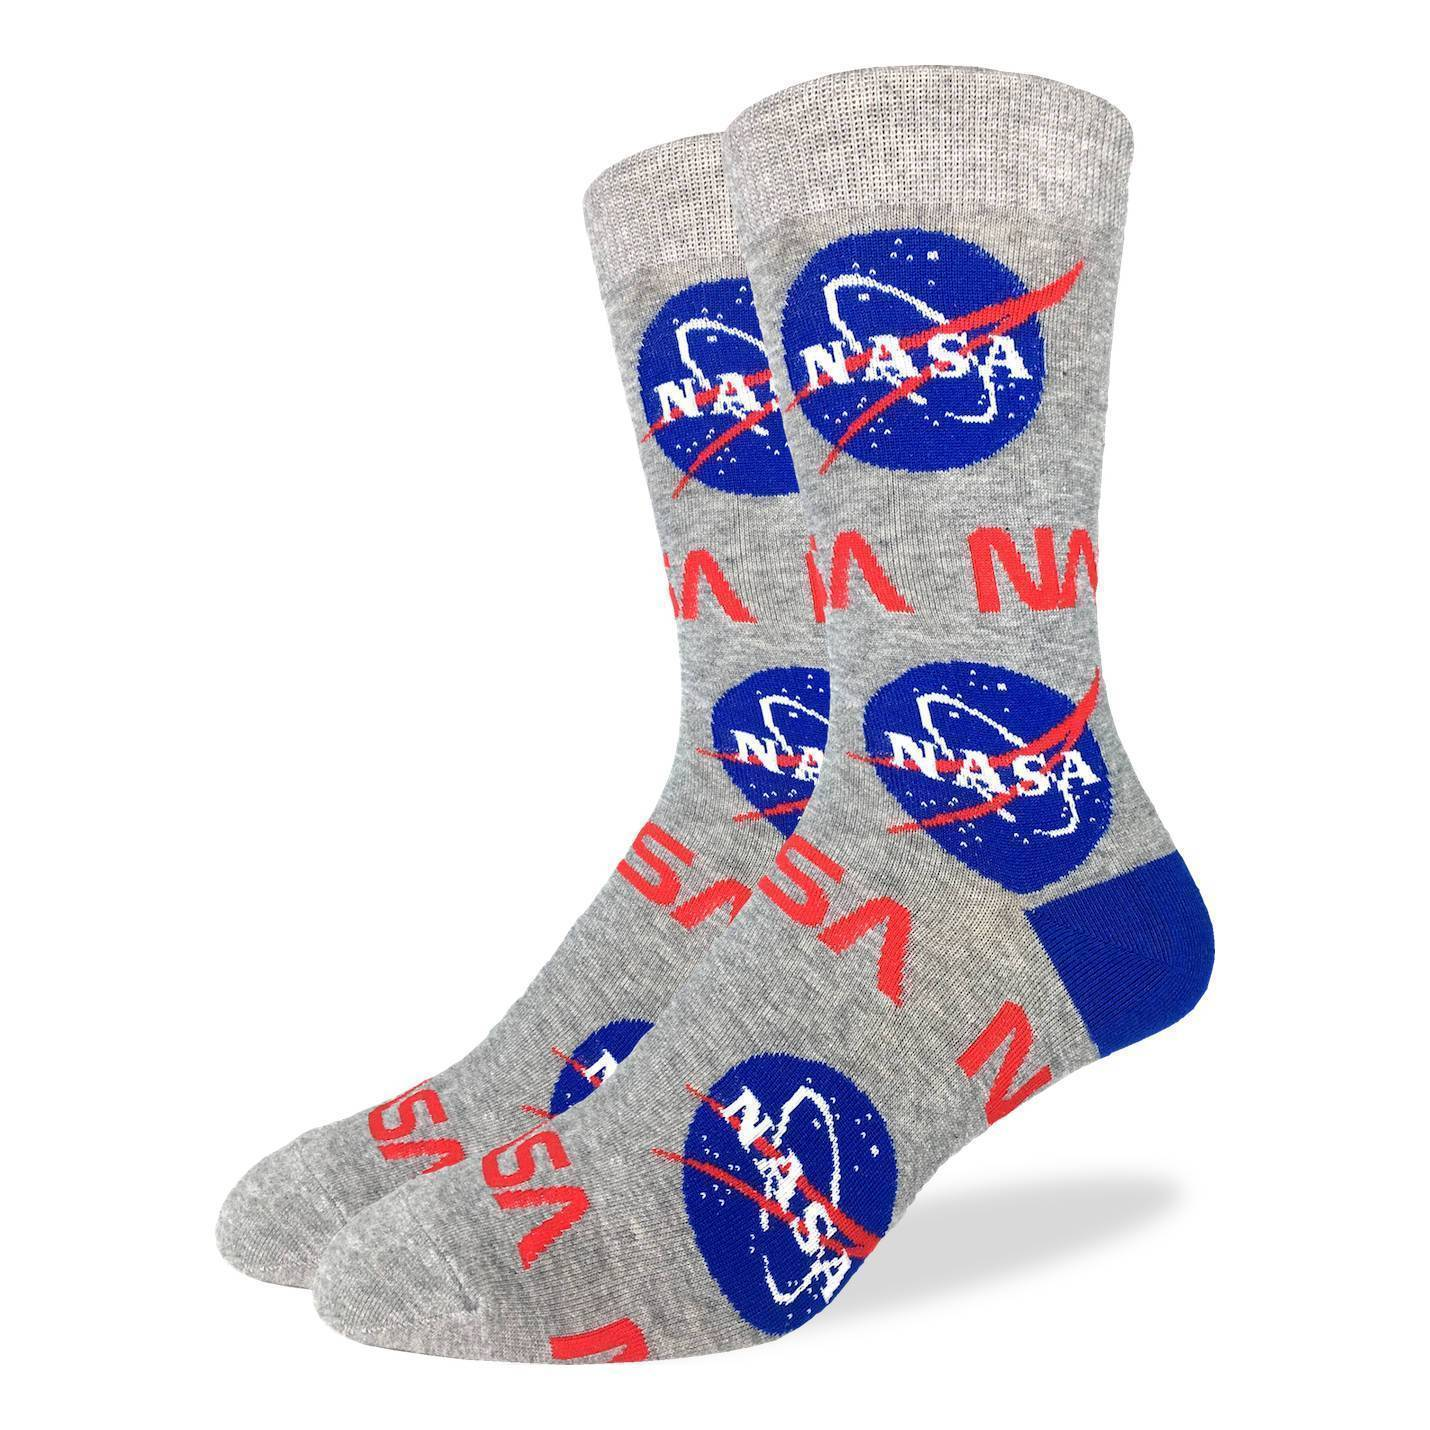 Good Luck Sock - NASA Crew Socks | Men's - Knock Your Socks Off